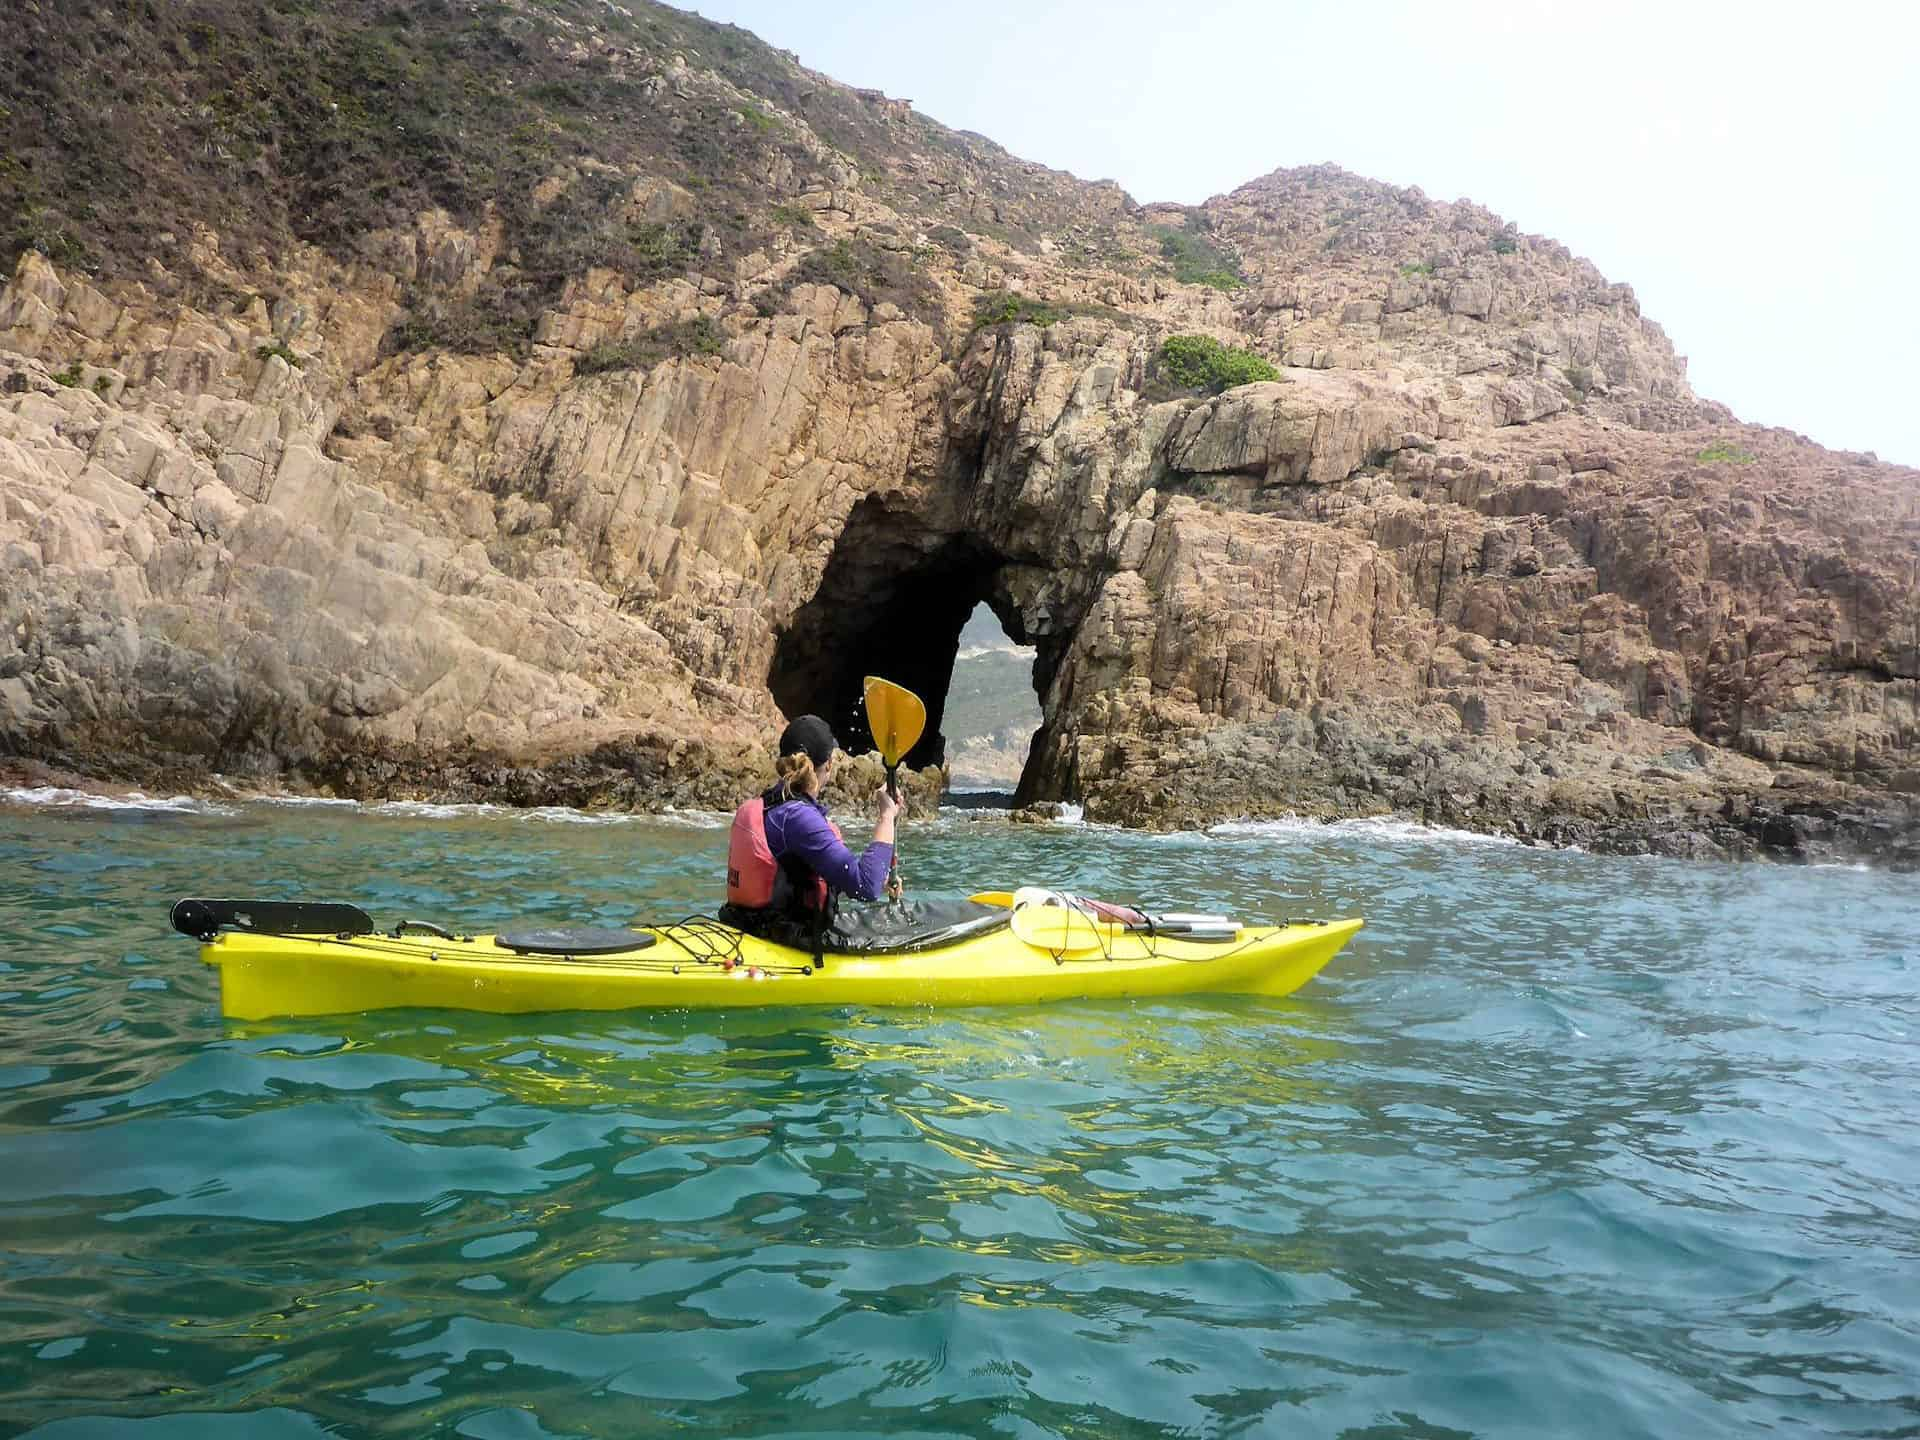 Sea Kayak Hong Kong 2018 Mar 31 Sai Kung 2 day_41